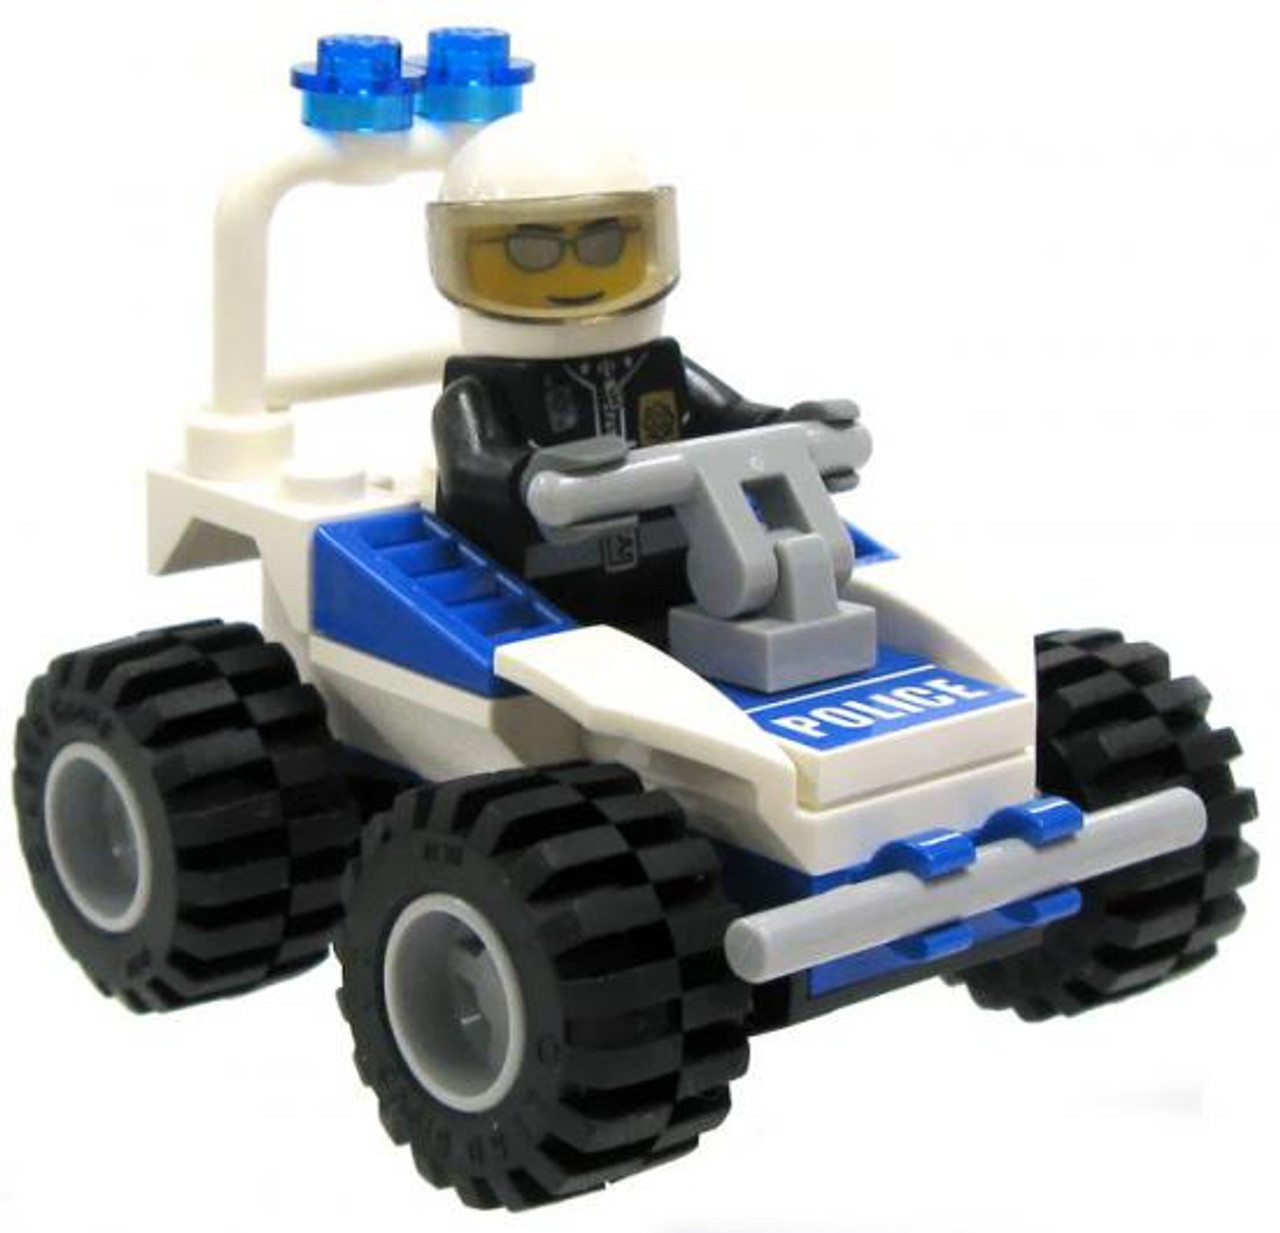 LEGO City Loose Event Police Officer Minifigure #1 [Loose]